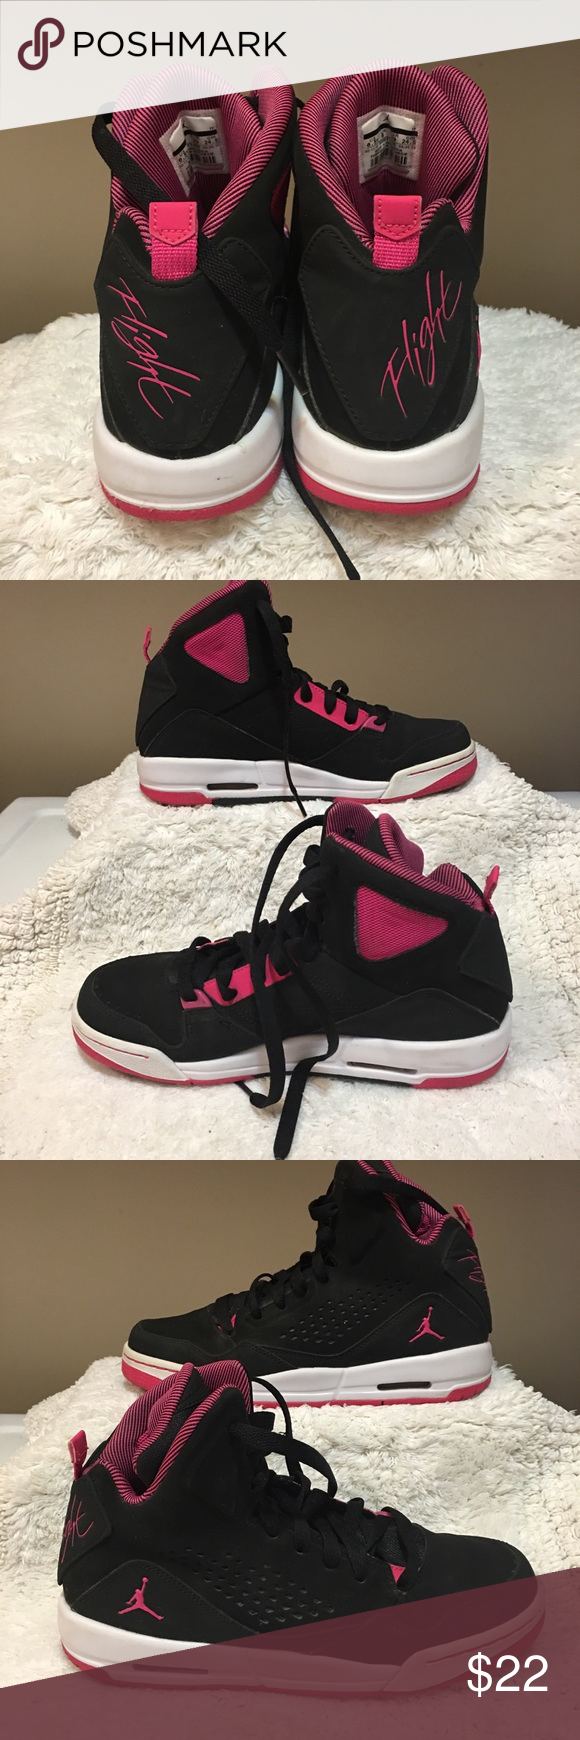 Black High Top Kids Shoes Size 2 Used Condition Kids' Clothing, Shoes & Accs Boys' Shoes